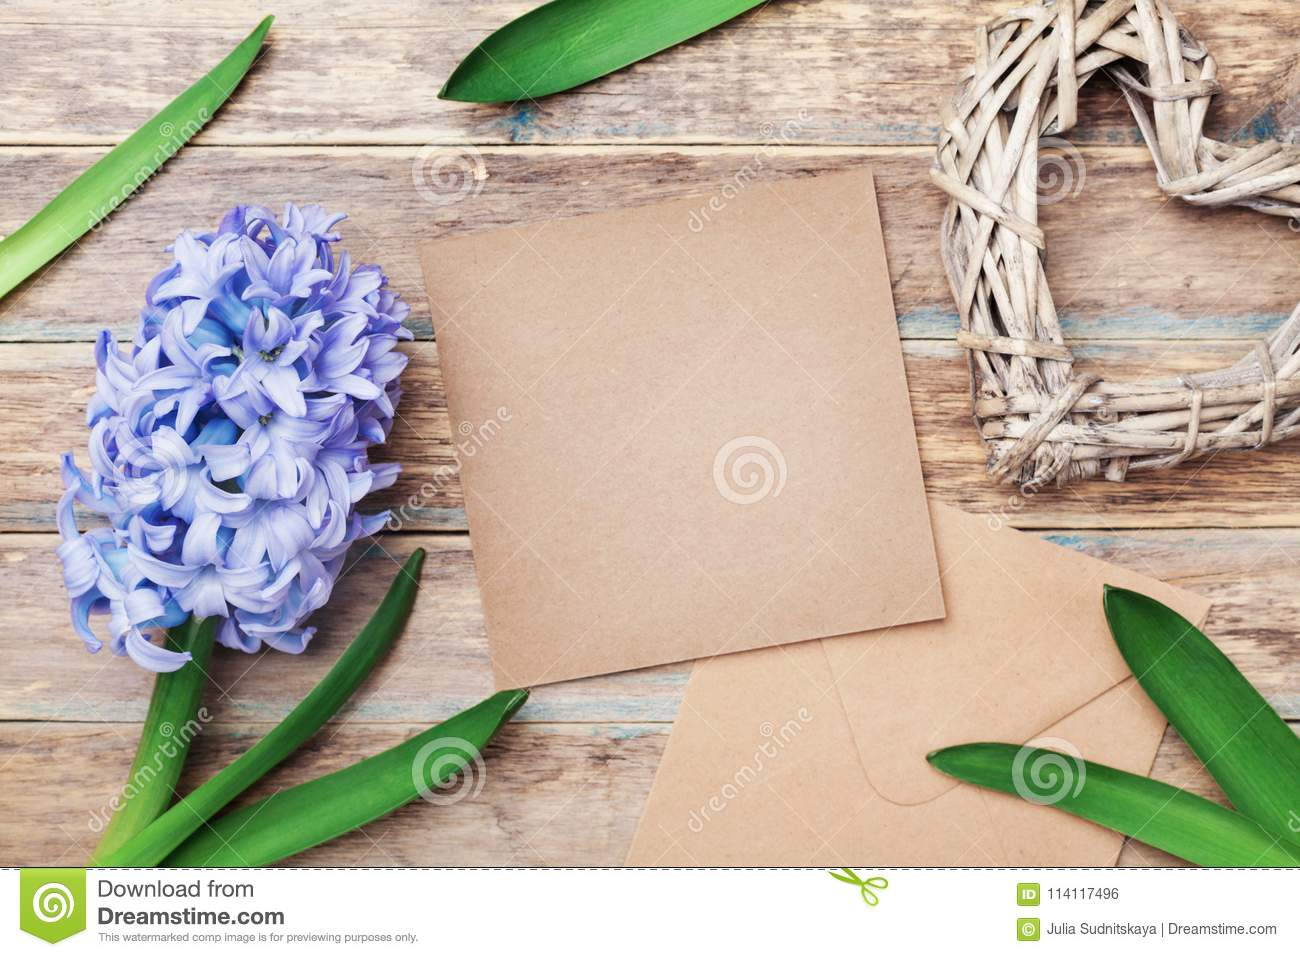 Greeting card on Mothers Day with kraft envelope decorated hyacinth flowers and heart on rustic background. Top view.